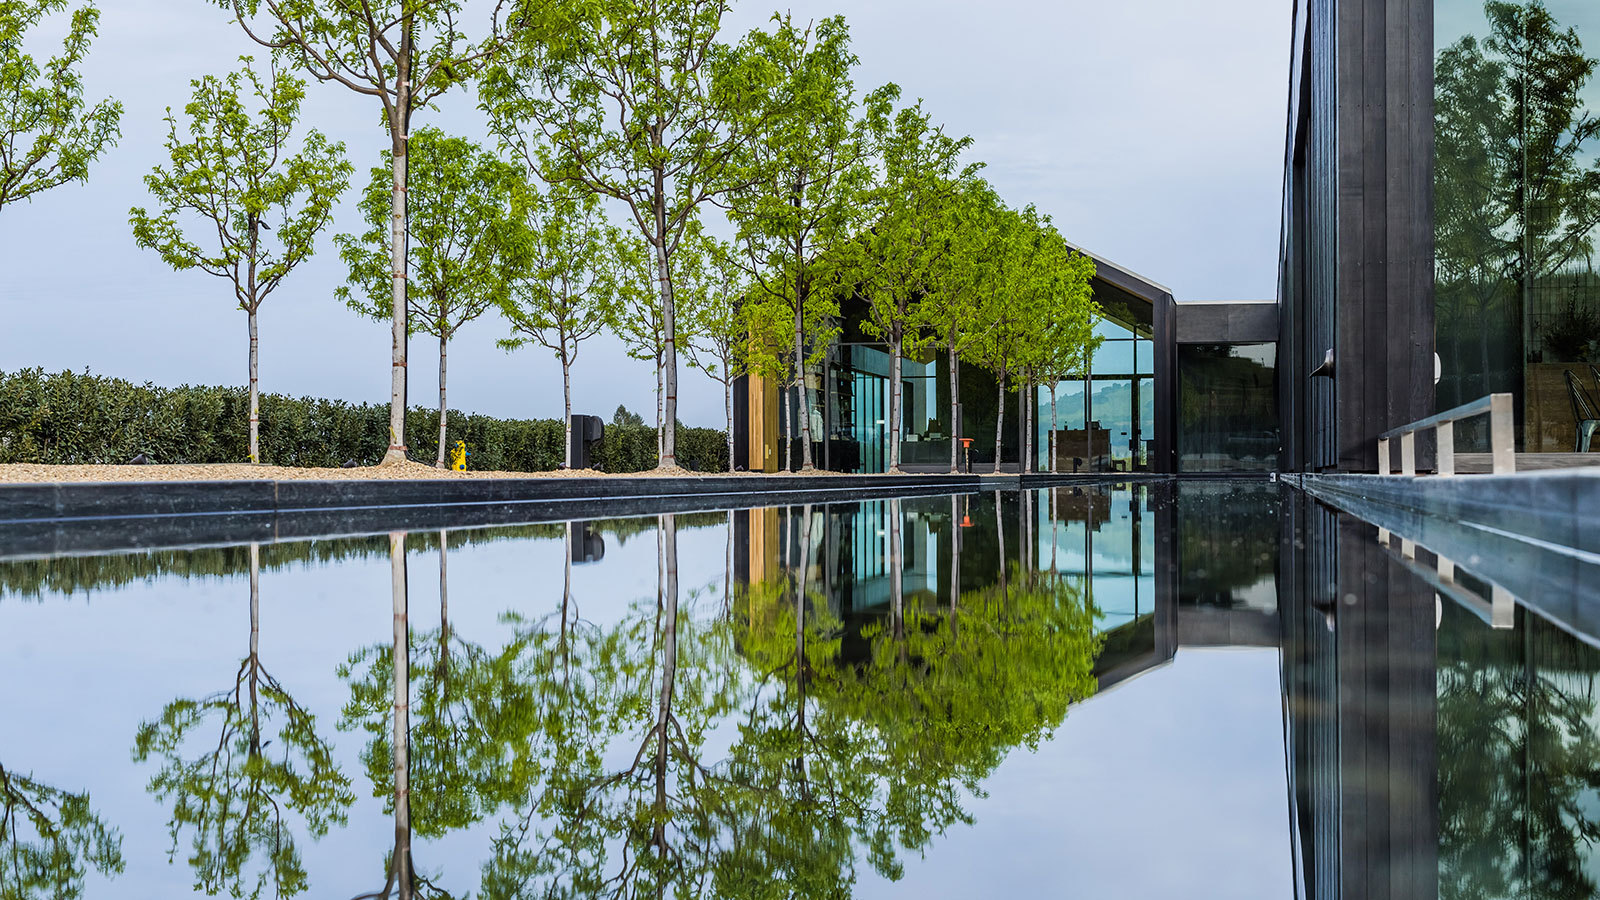 Silver Oak Builds First New Winery To Earn Leed Platinum Sustainability Certification photo